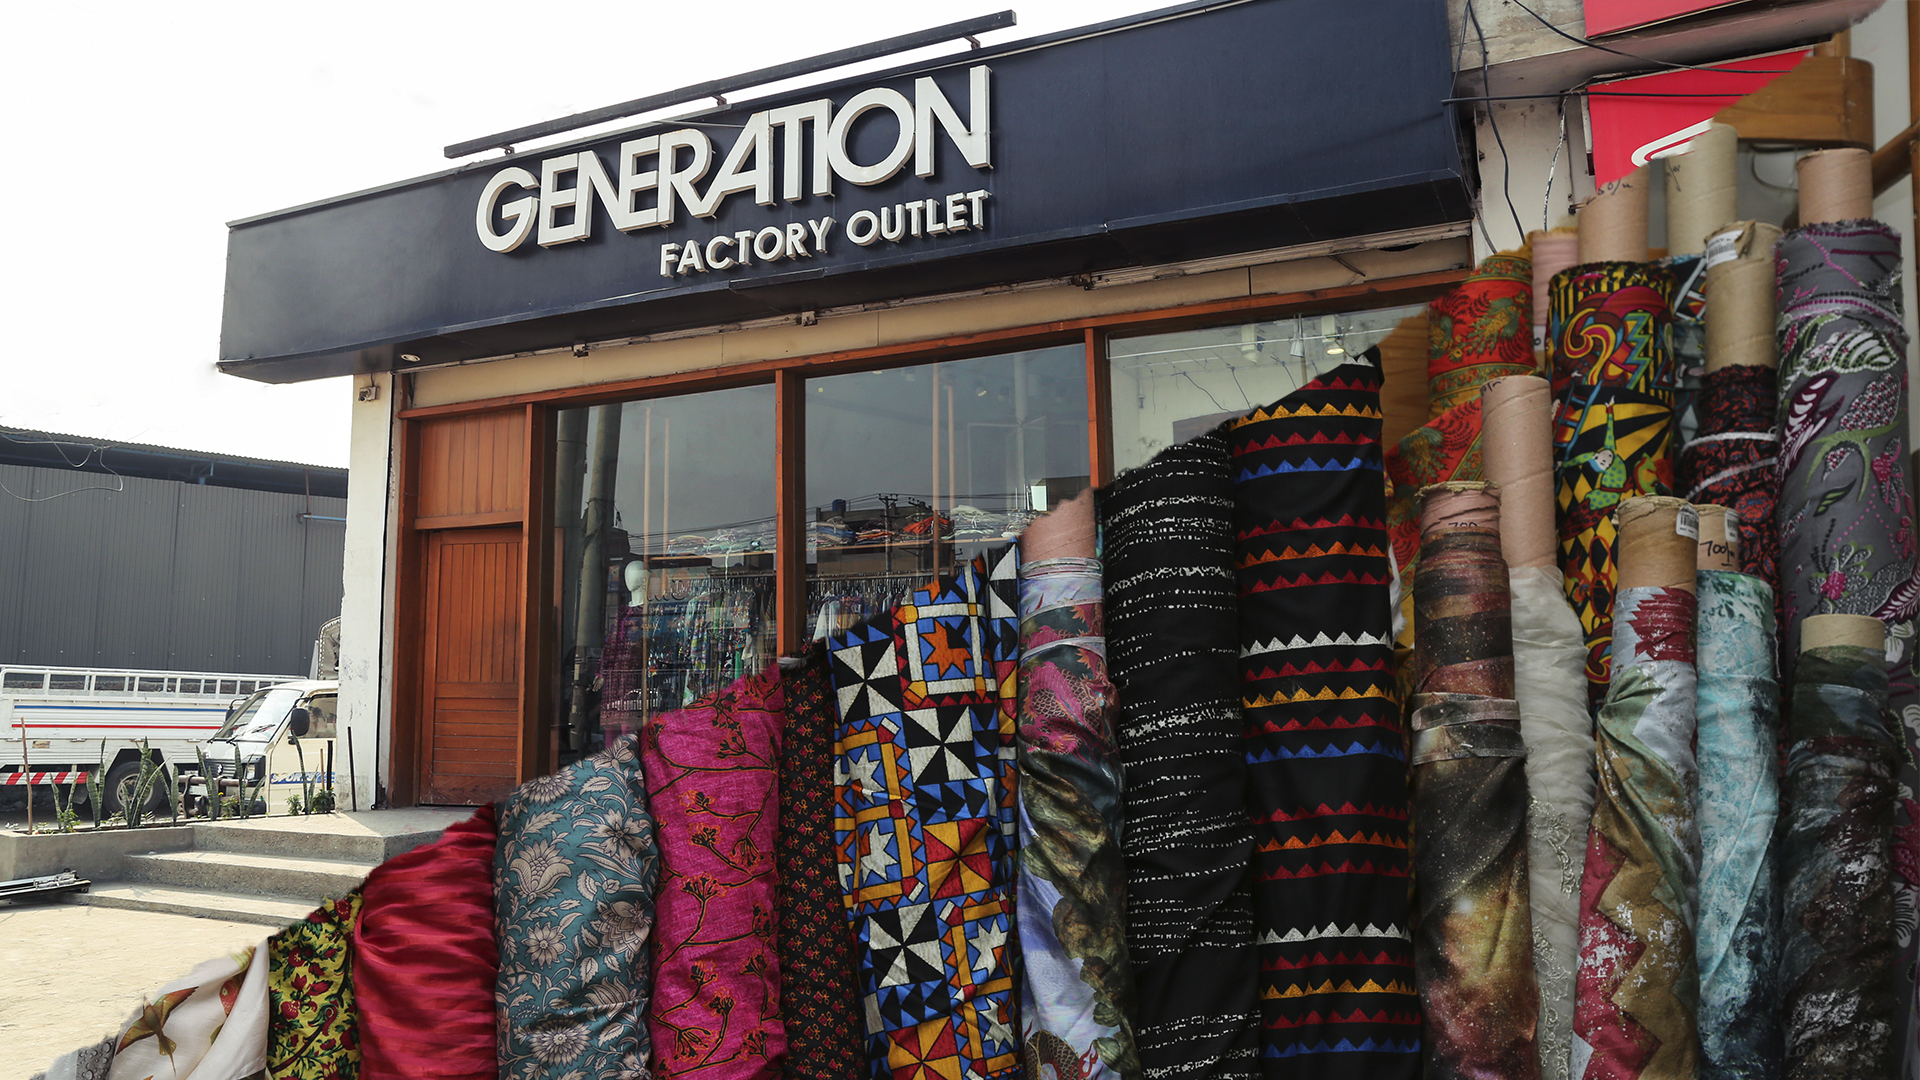 The Generation Factory Outlet!